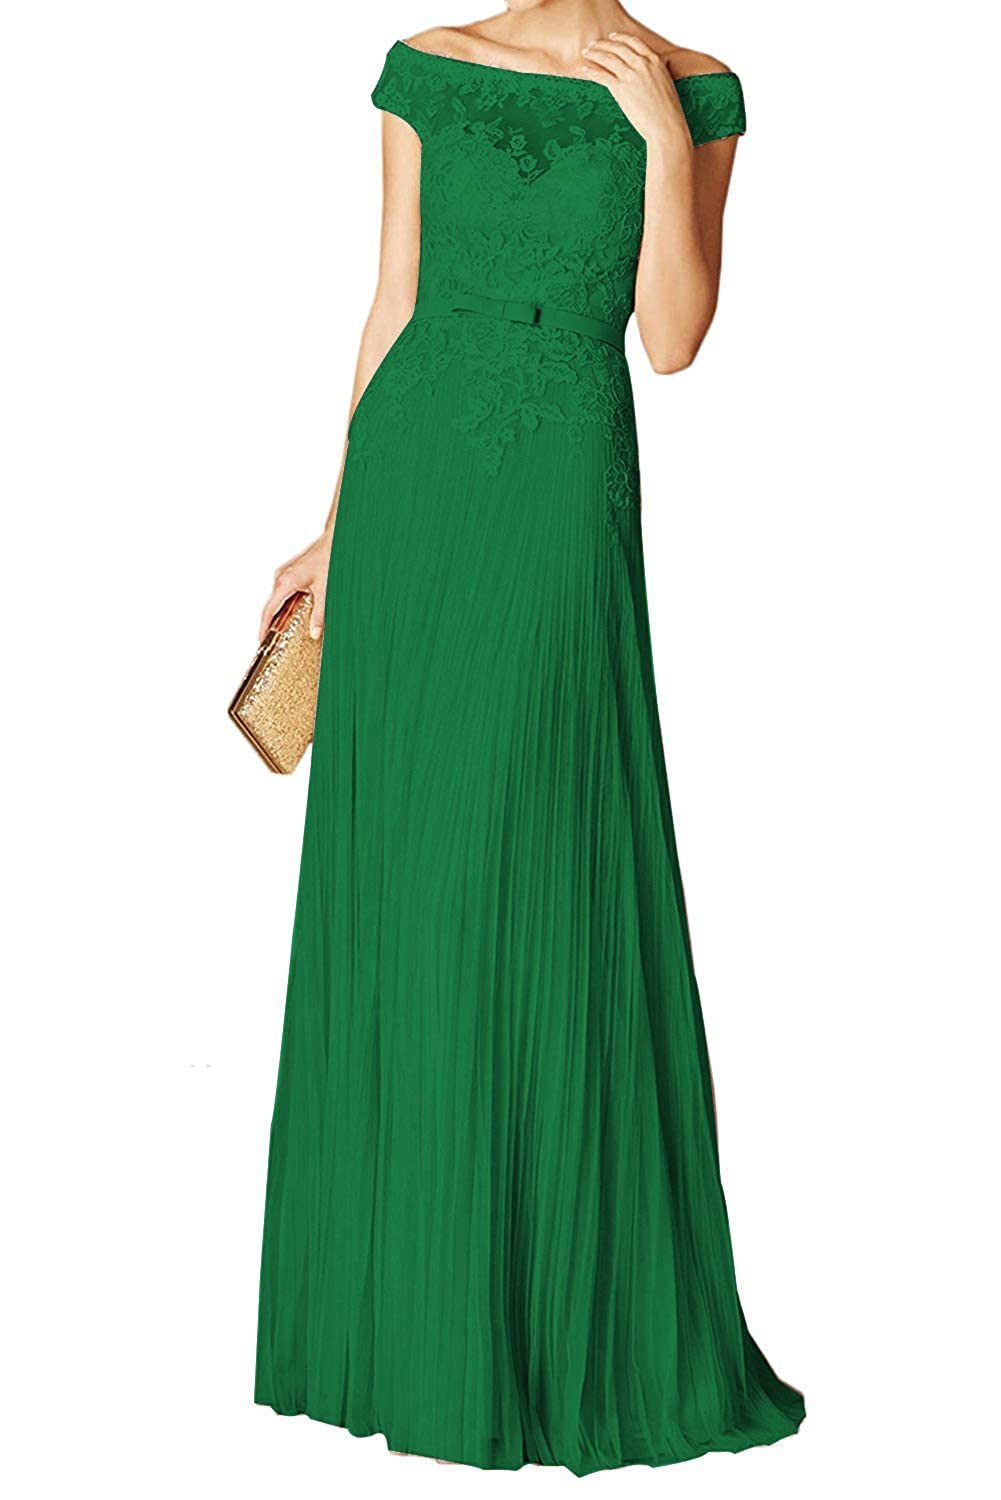 Dark Green PearlBridal Women's Lace Off The Shoulder Prom Dresses Appliques Pleats Long Evening Party Gown